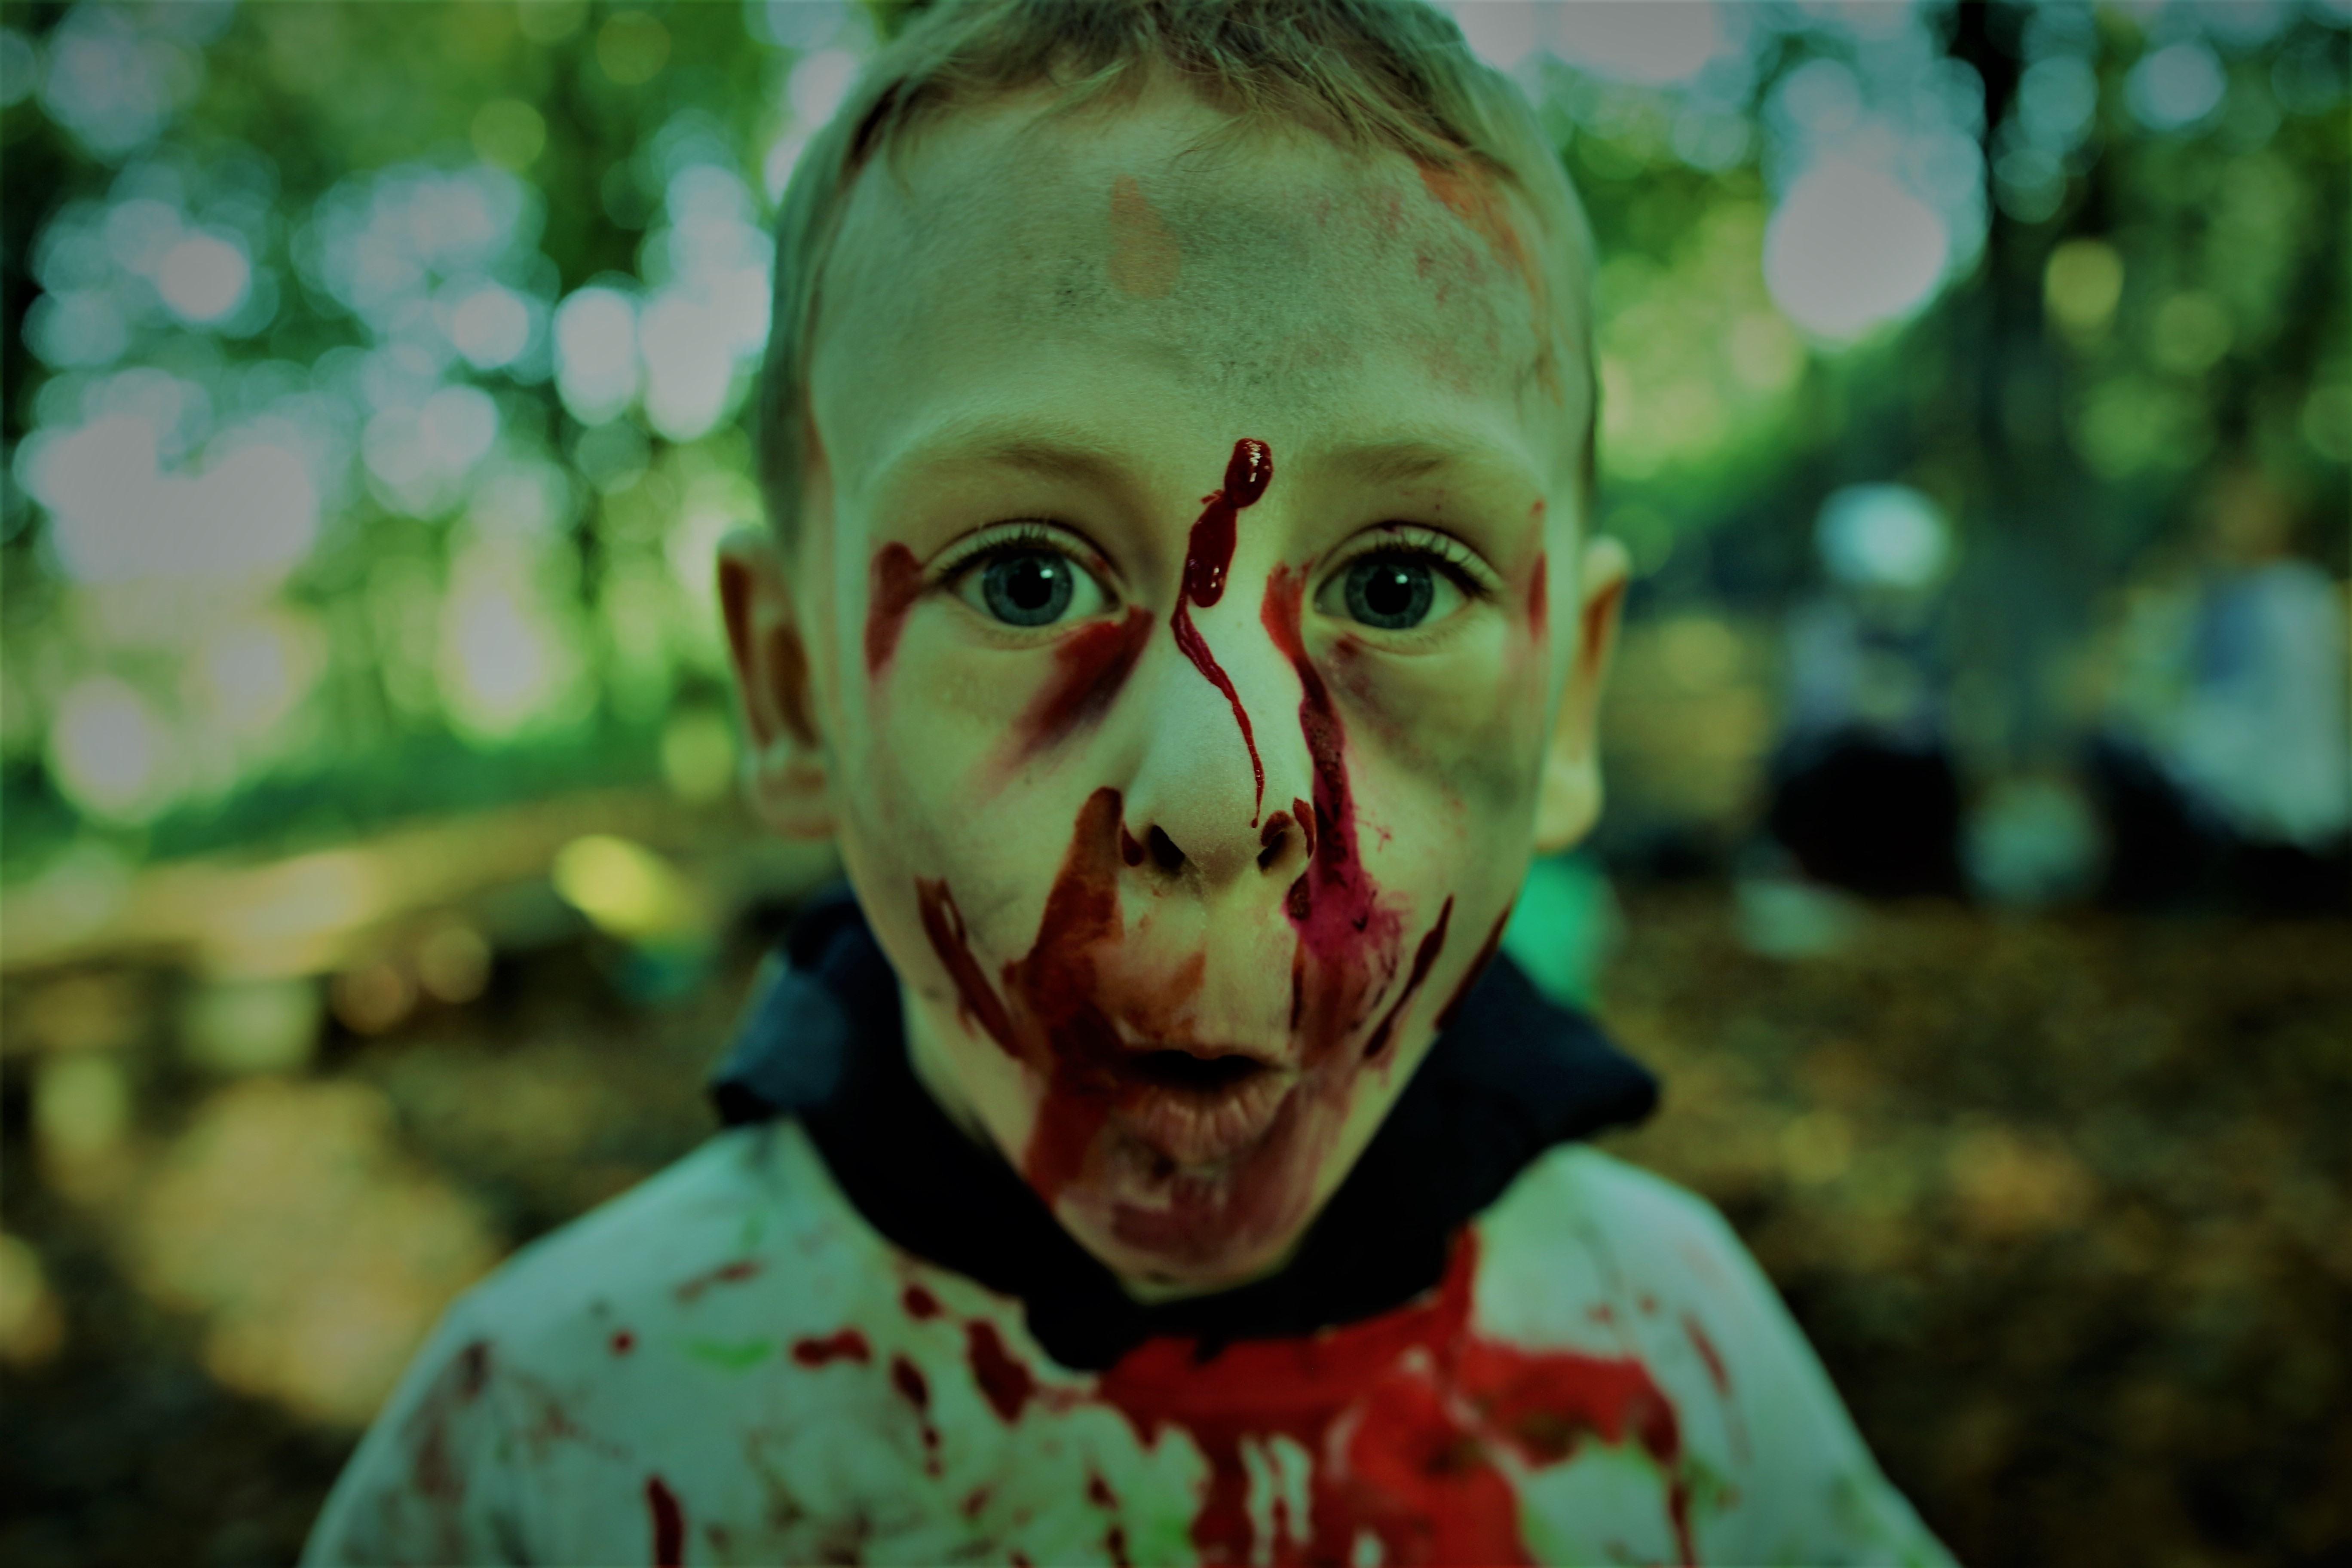 Wild Child Zombie Day session mentored by Luke Funnell